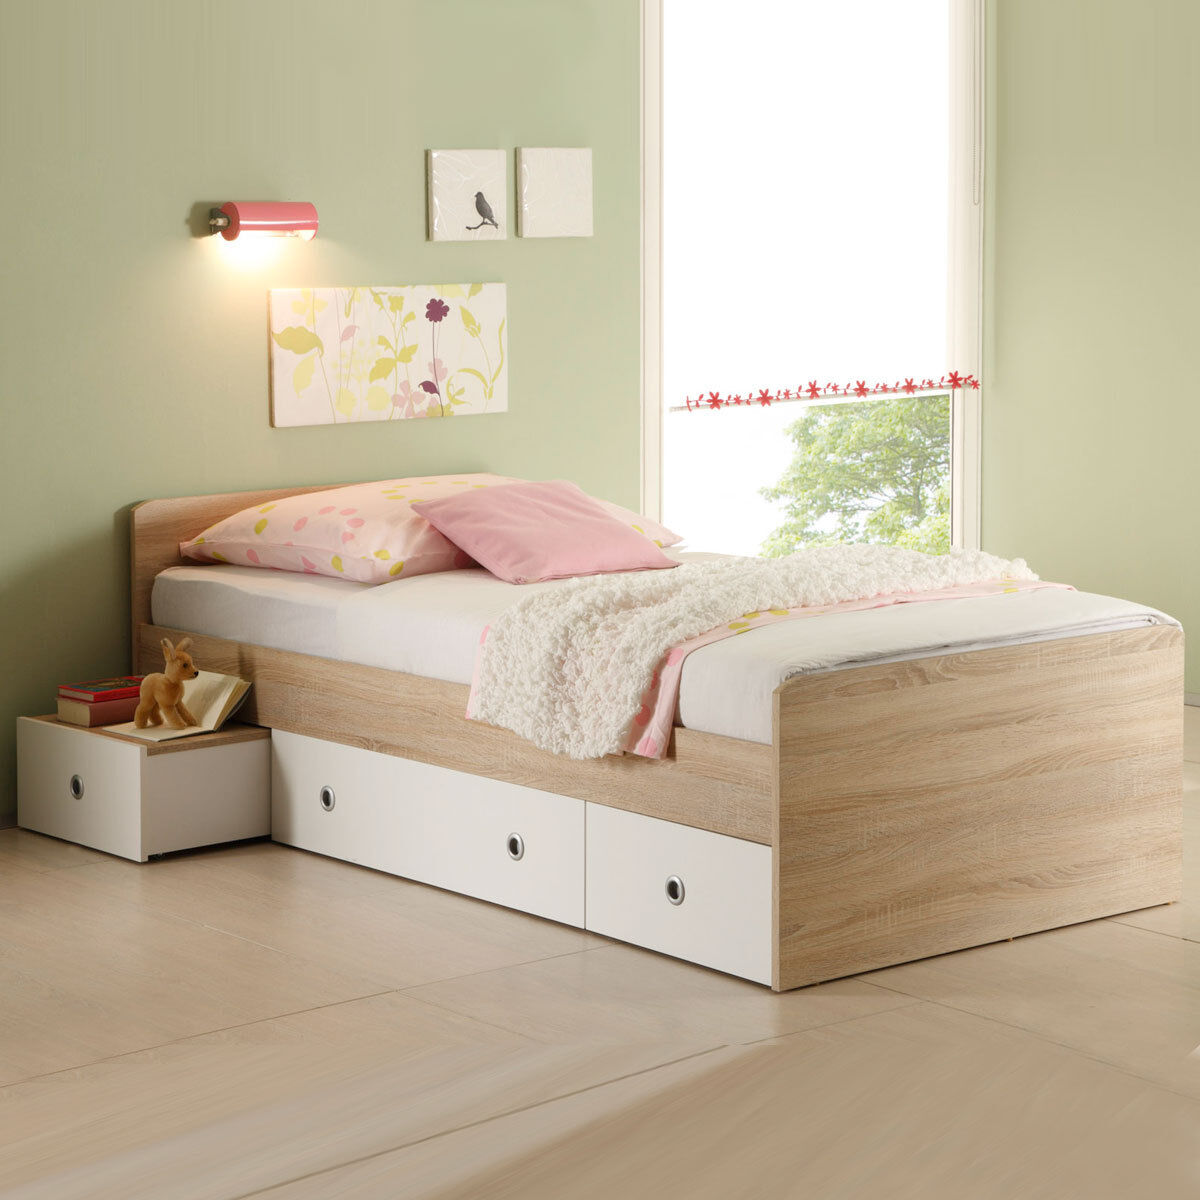 bett wiki kinderbett jugendzimmer in sonoma eiche s gerau 90x200 cm eur 99 95 picclick de. Black Bedroom Furniture Sets. Home Design Ideas